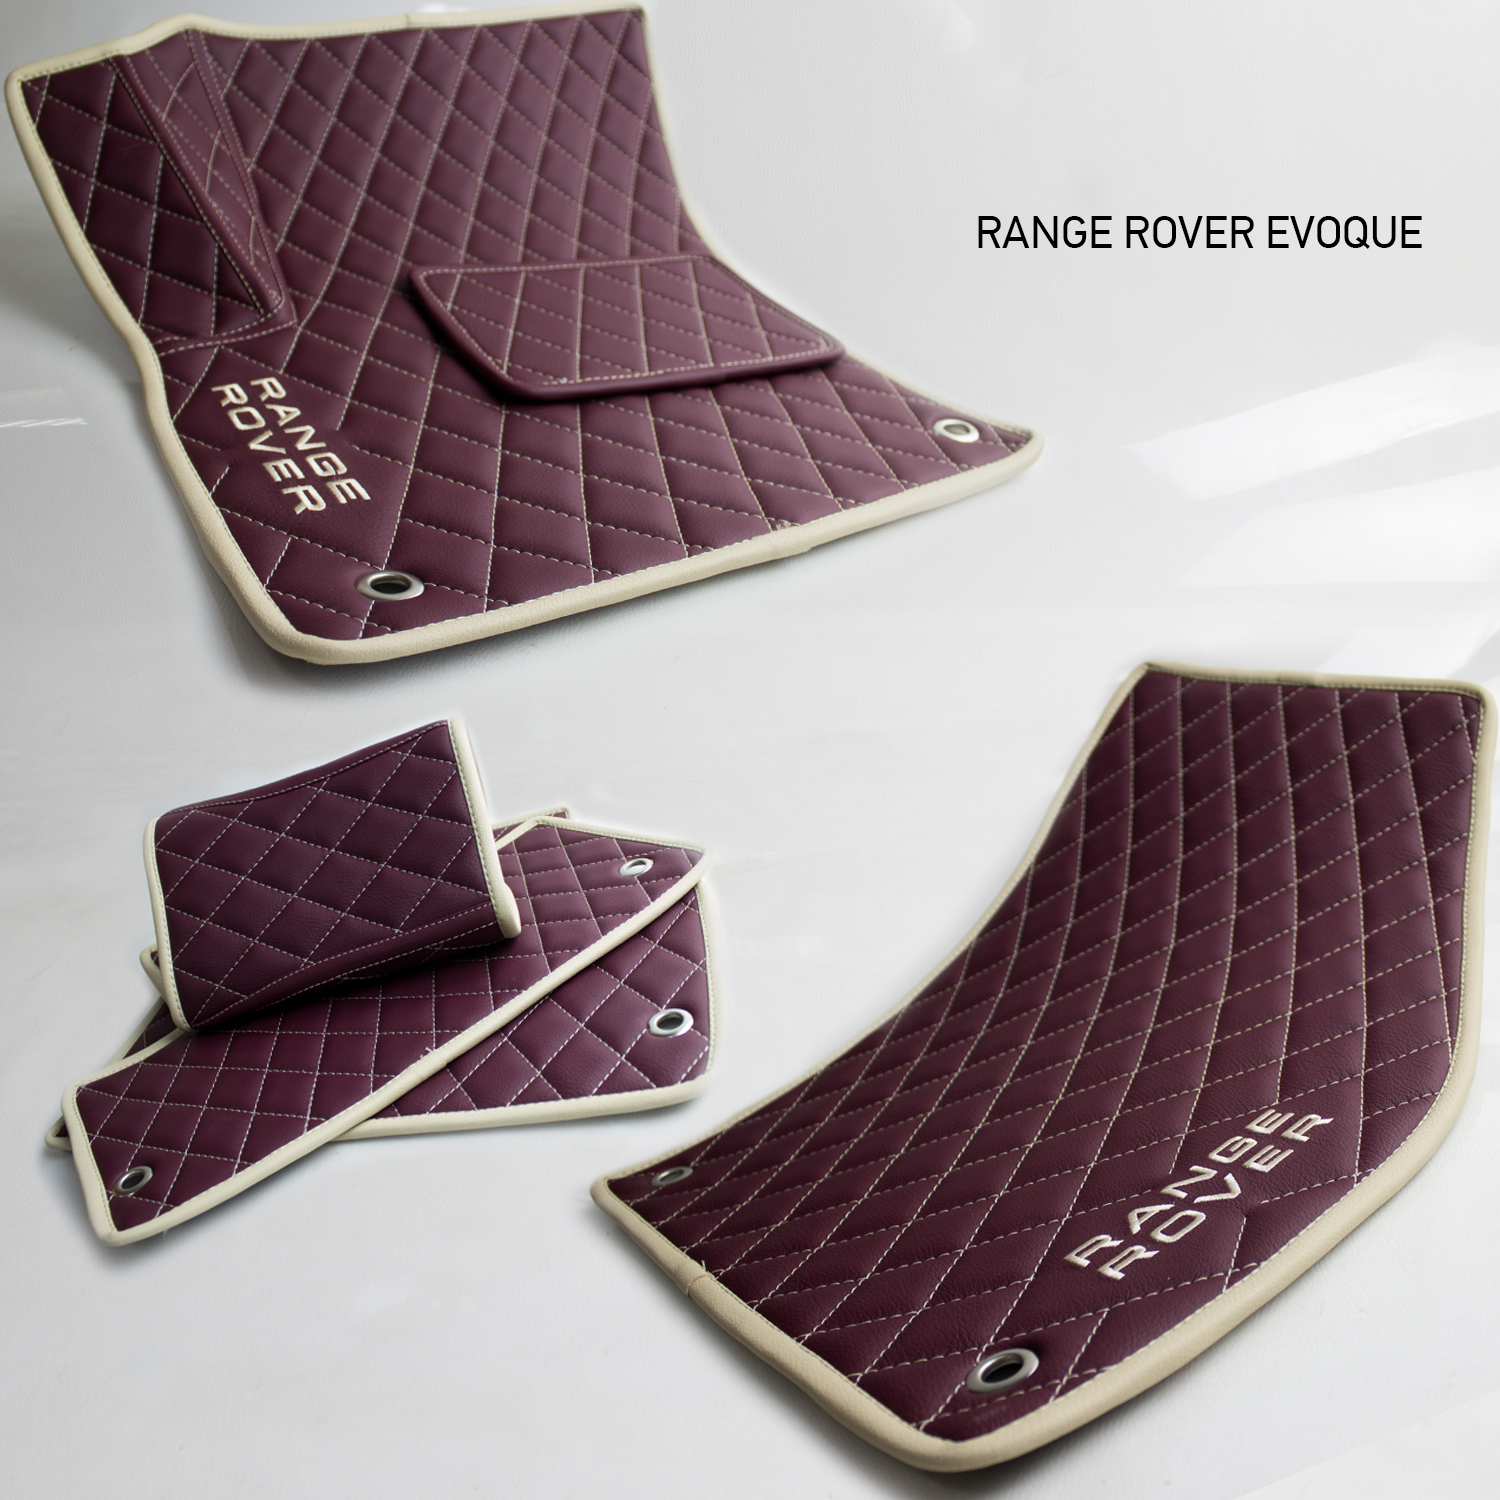 images-products-1-309-232988981-RANGE_ROVER_EVOQUE.jpg